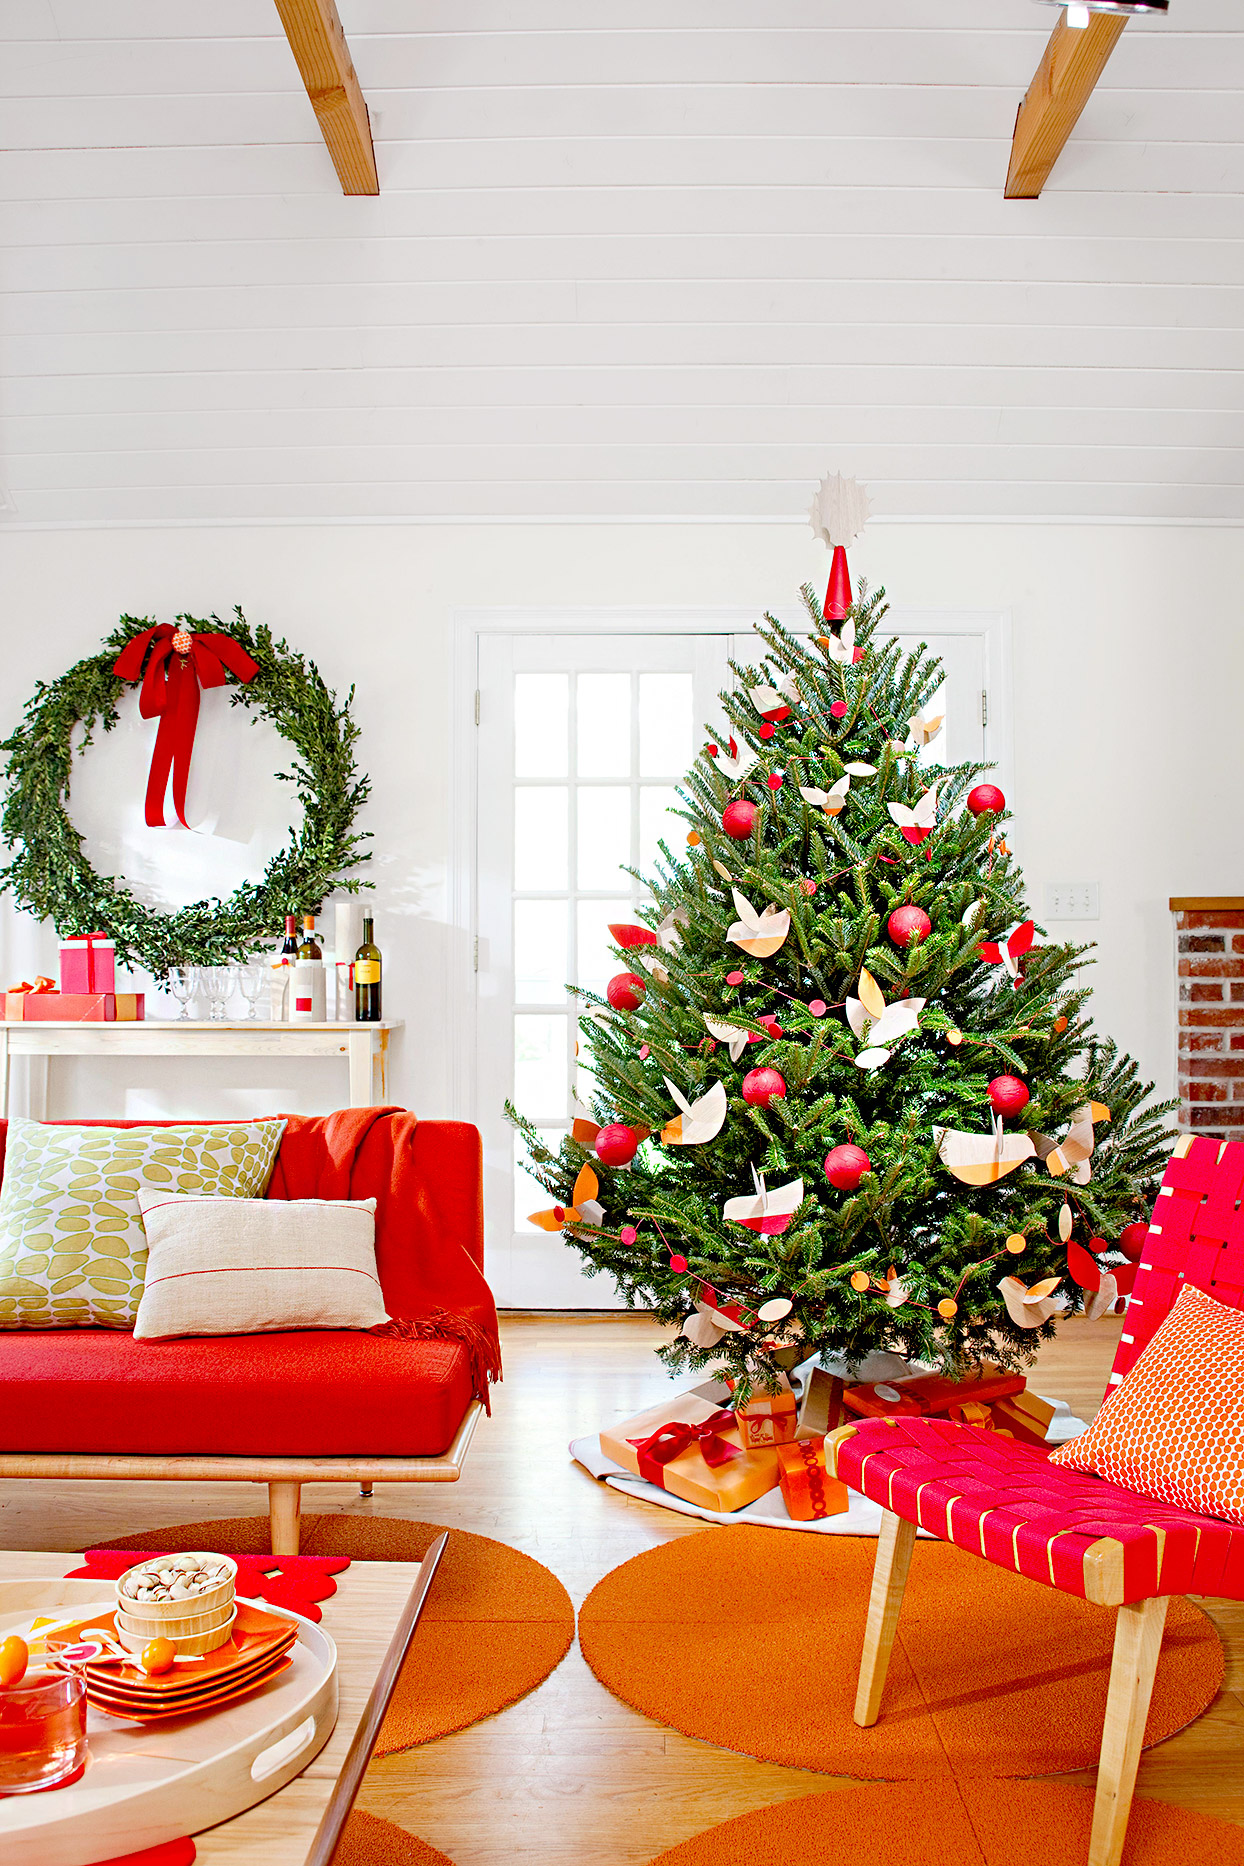 Living room with Christmas tree and large wreath